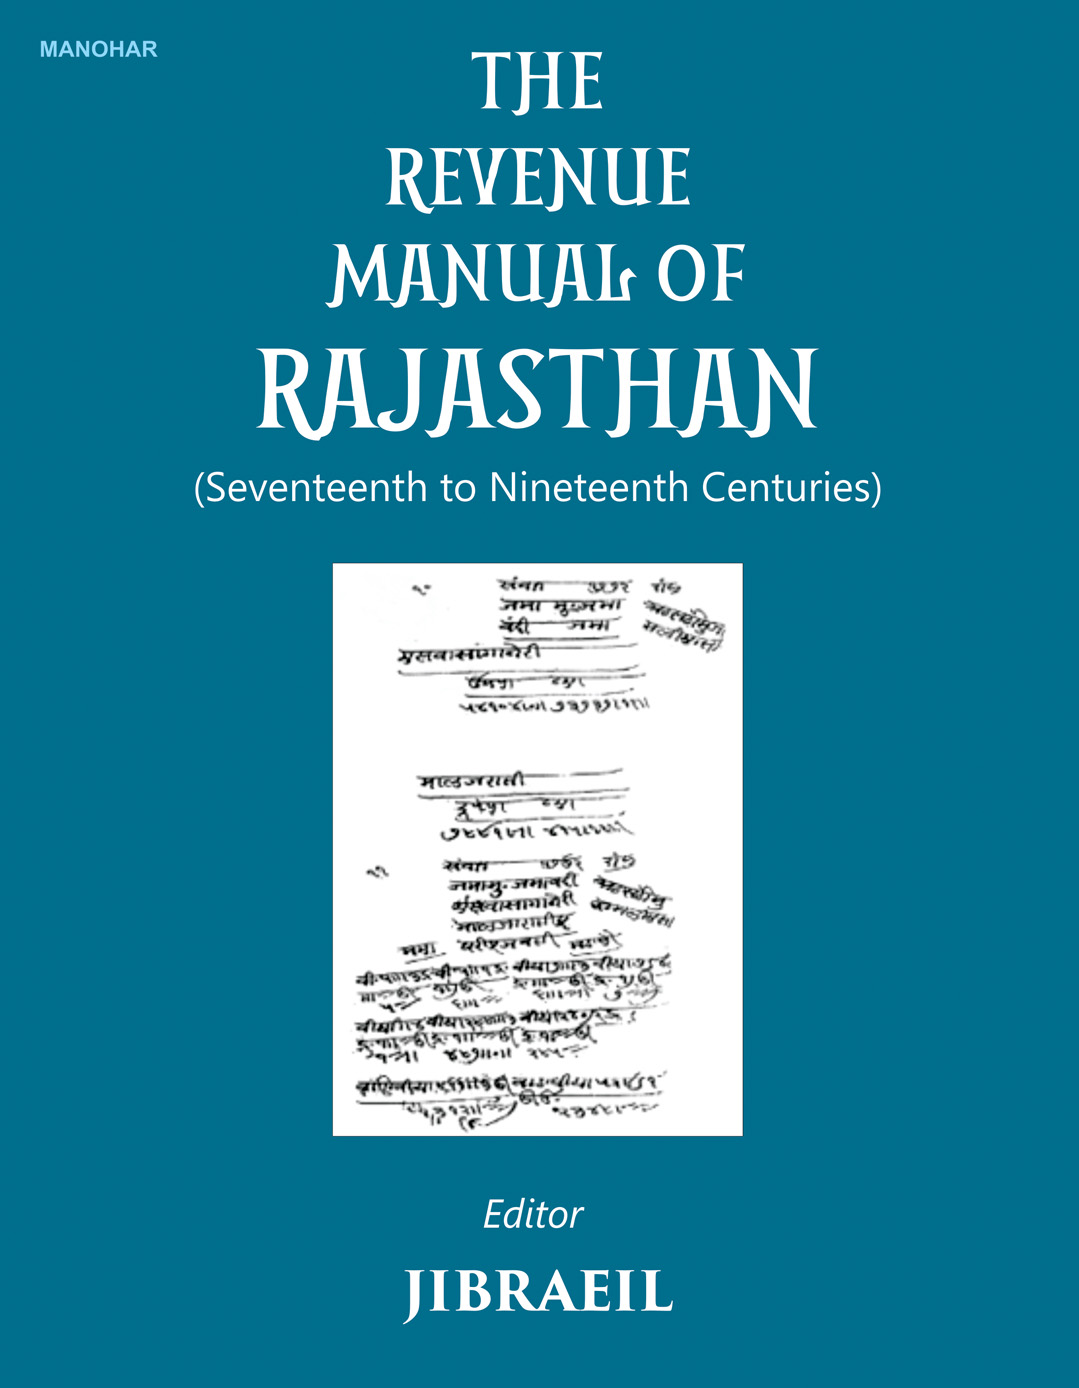 THE REVENUE MANUAL OF RAJASTHAN (SEVENTEENTH TO NINETEENTH CENTURIES)